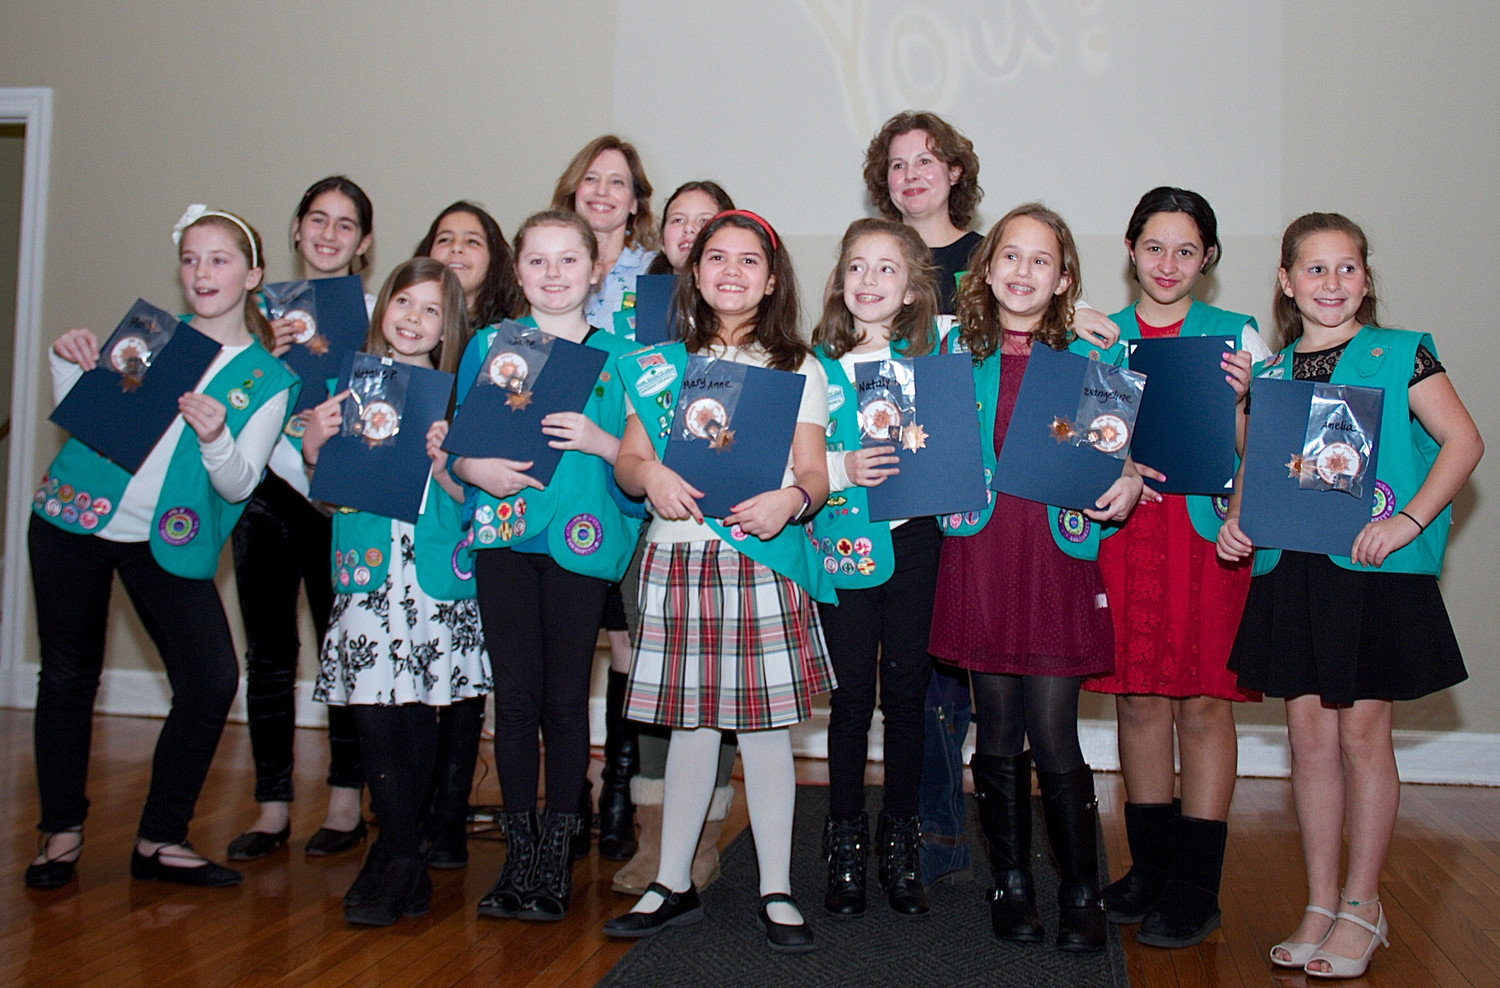 Leaders Dianne Russo (sixth from left) and Kristin Herron were proud of the girls from Troop 211 who earned Bronze Awards.